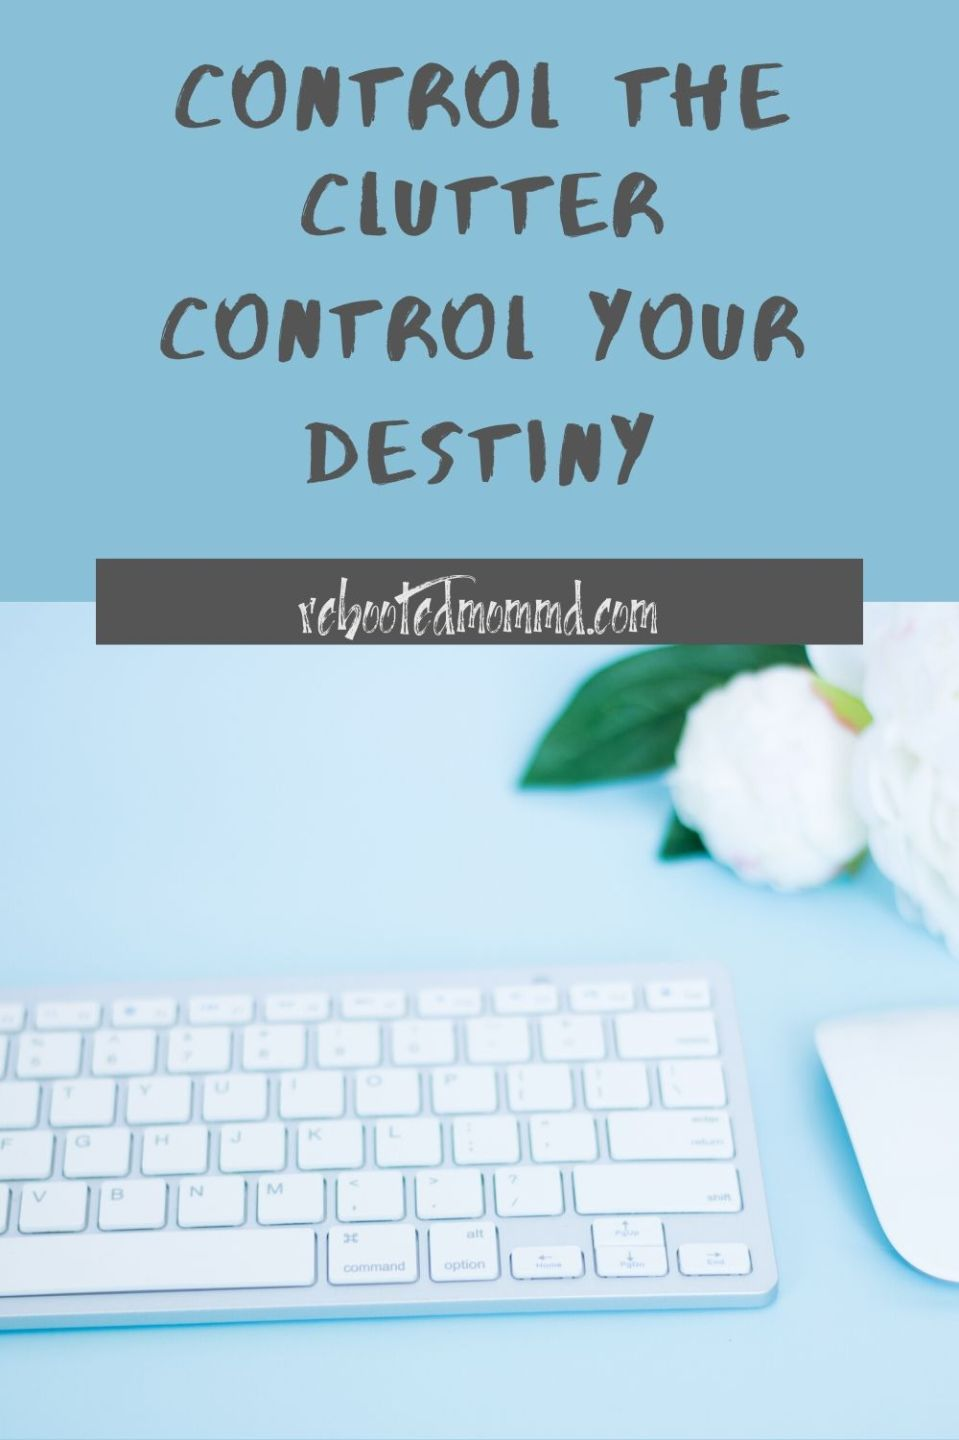 Control the Clutter, Control Your Destiny